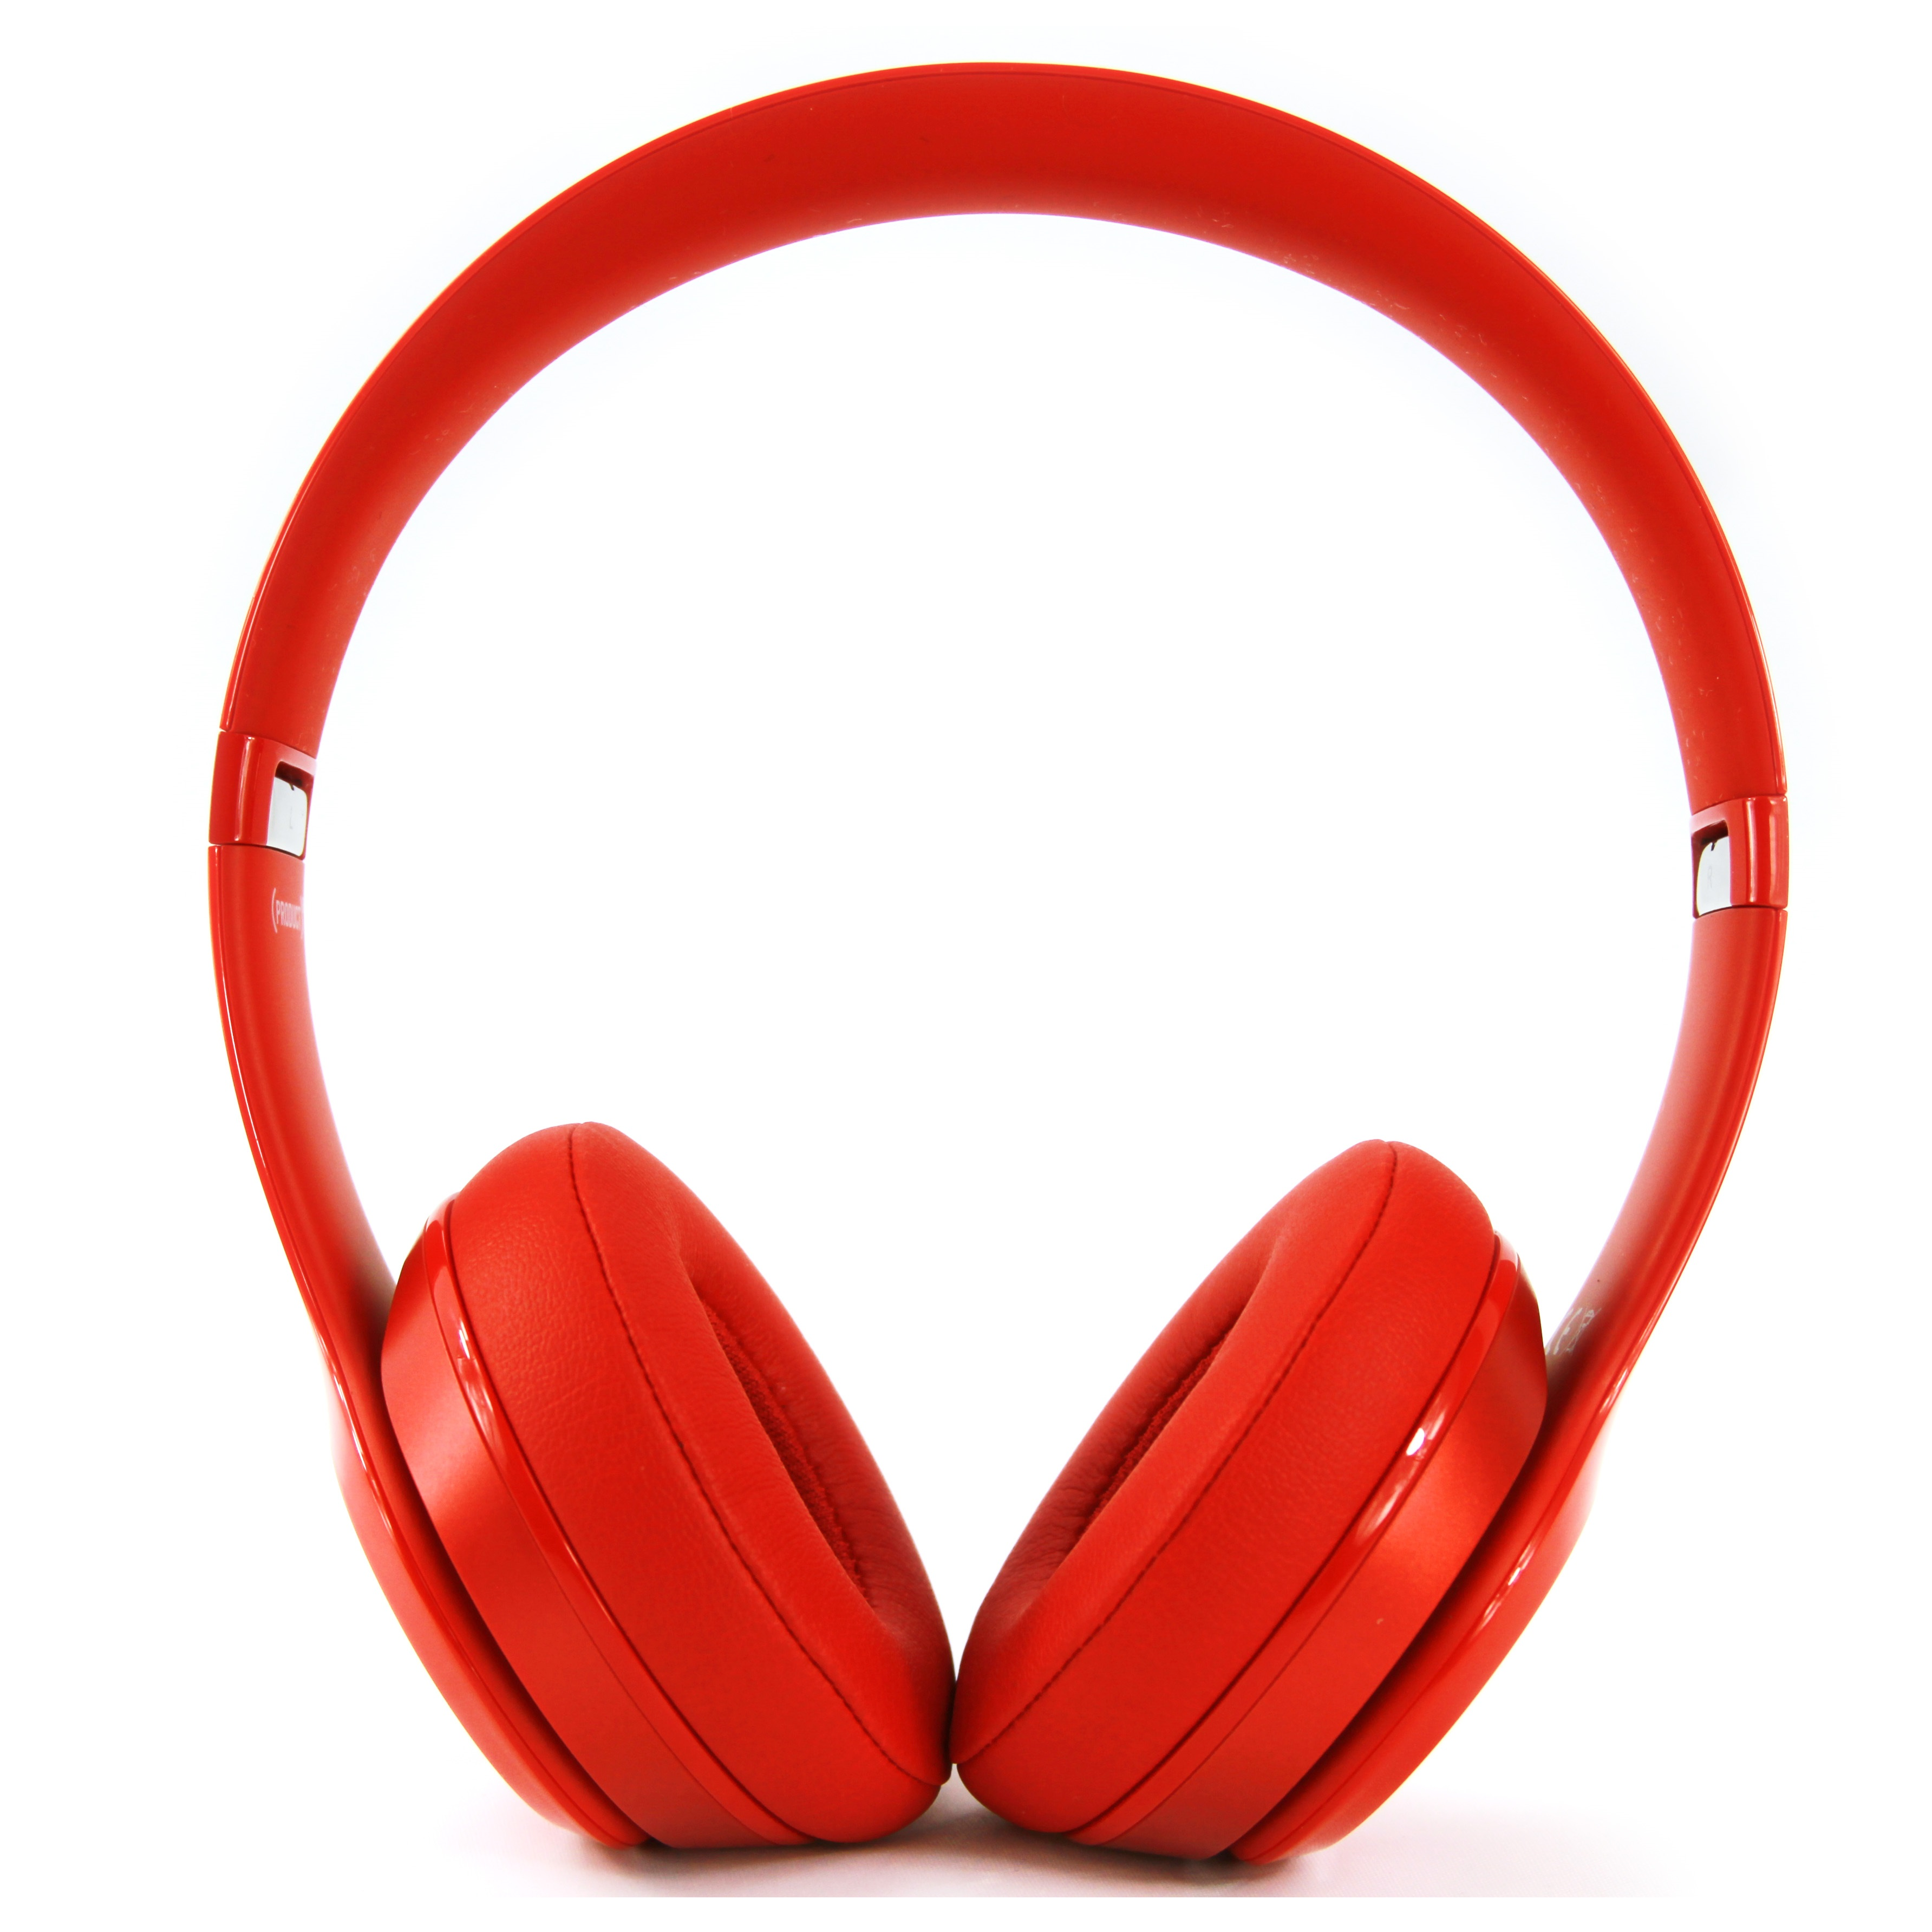 Beats by Dr. Dre Solo2 Corded Over-Ear Headphones, Red